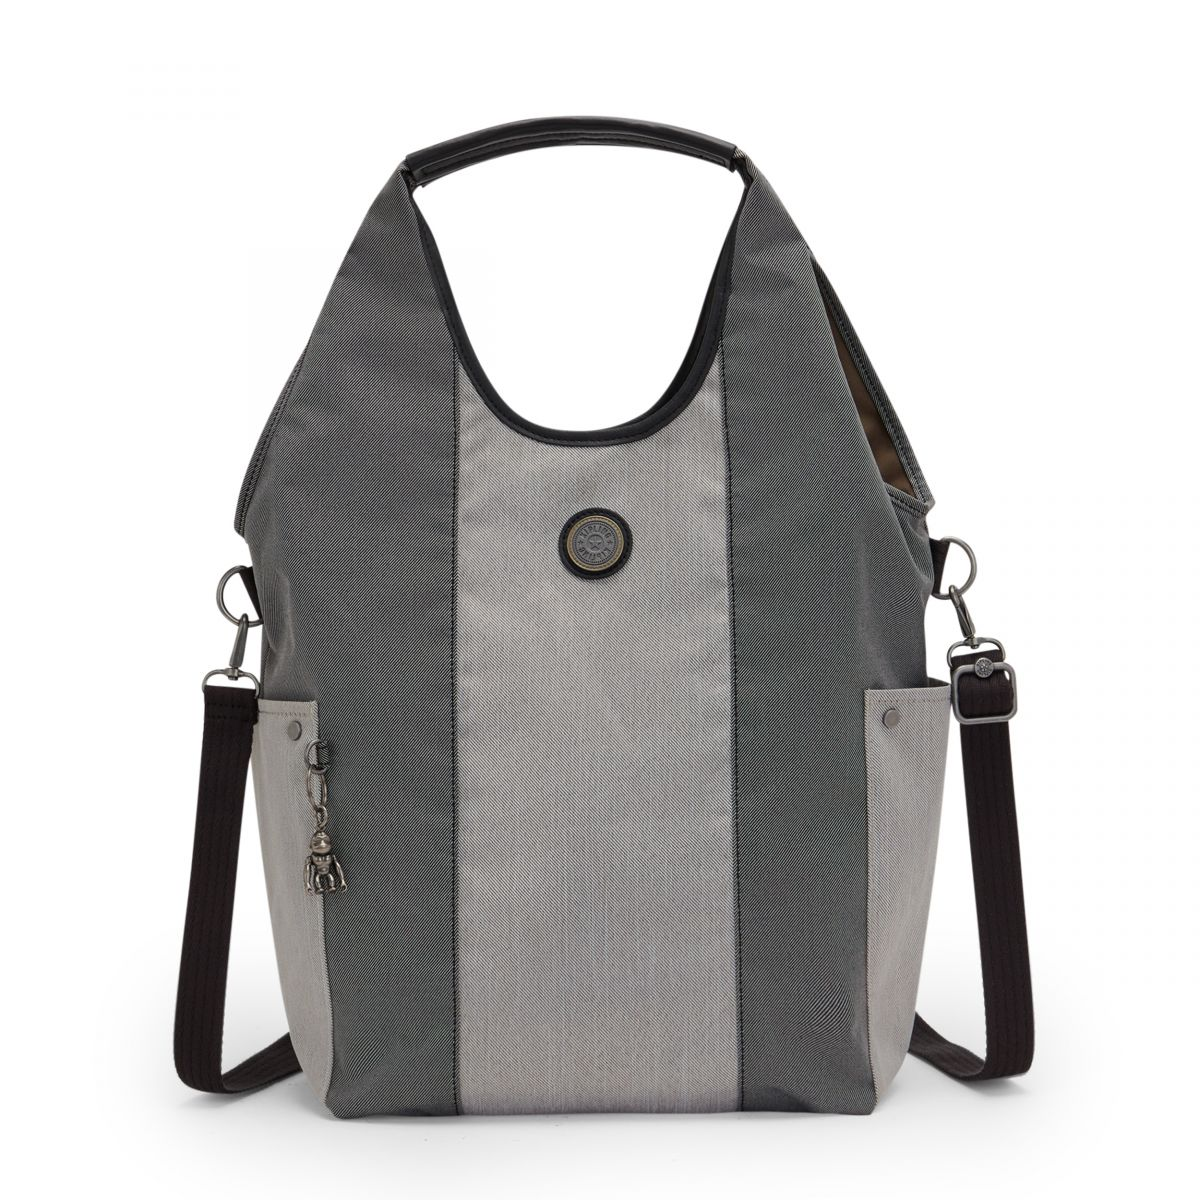 URBANA BAGS by Kipling - Front view